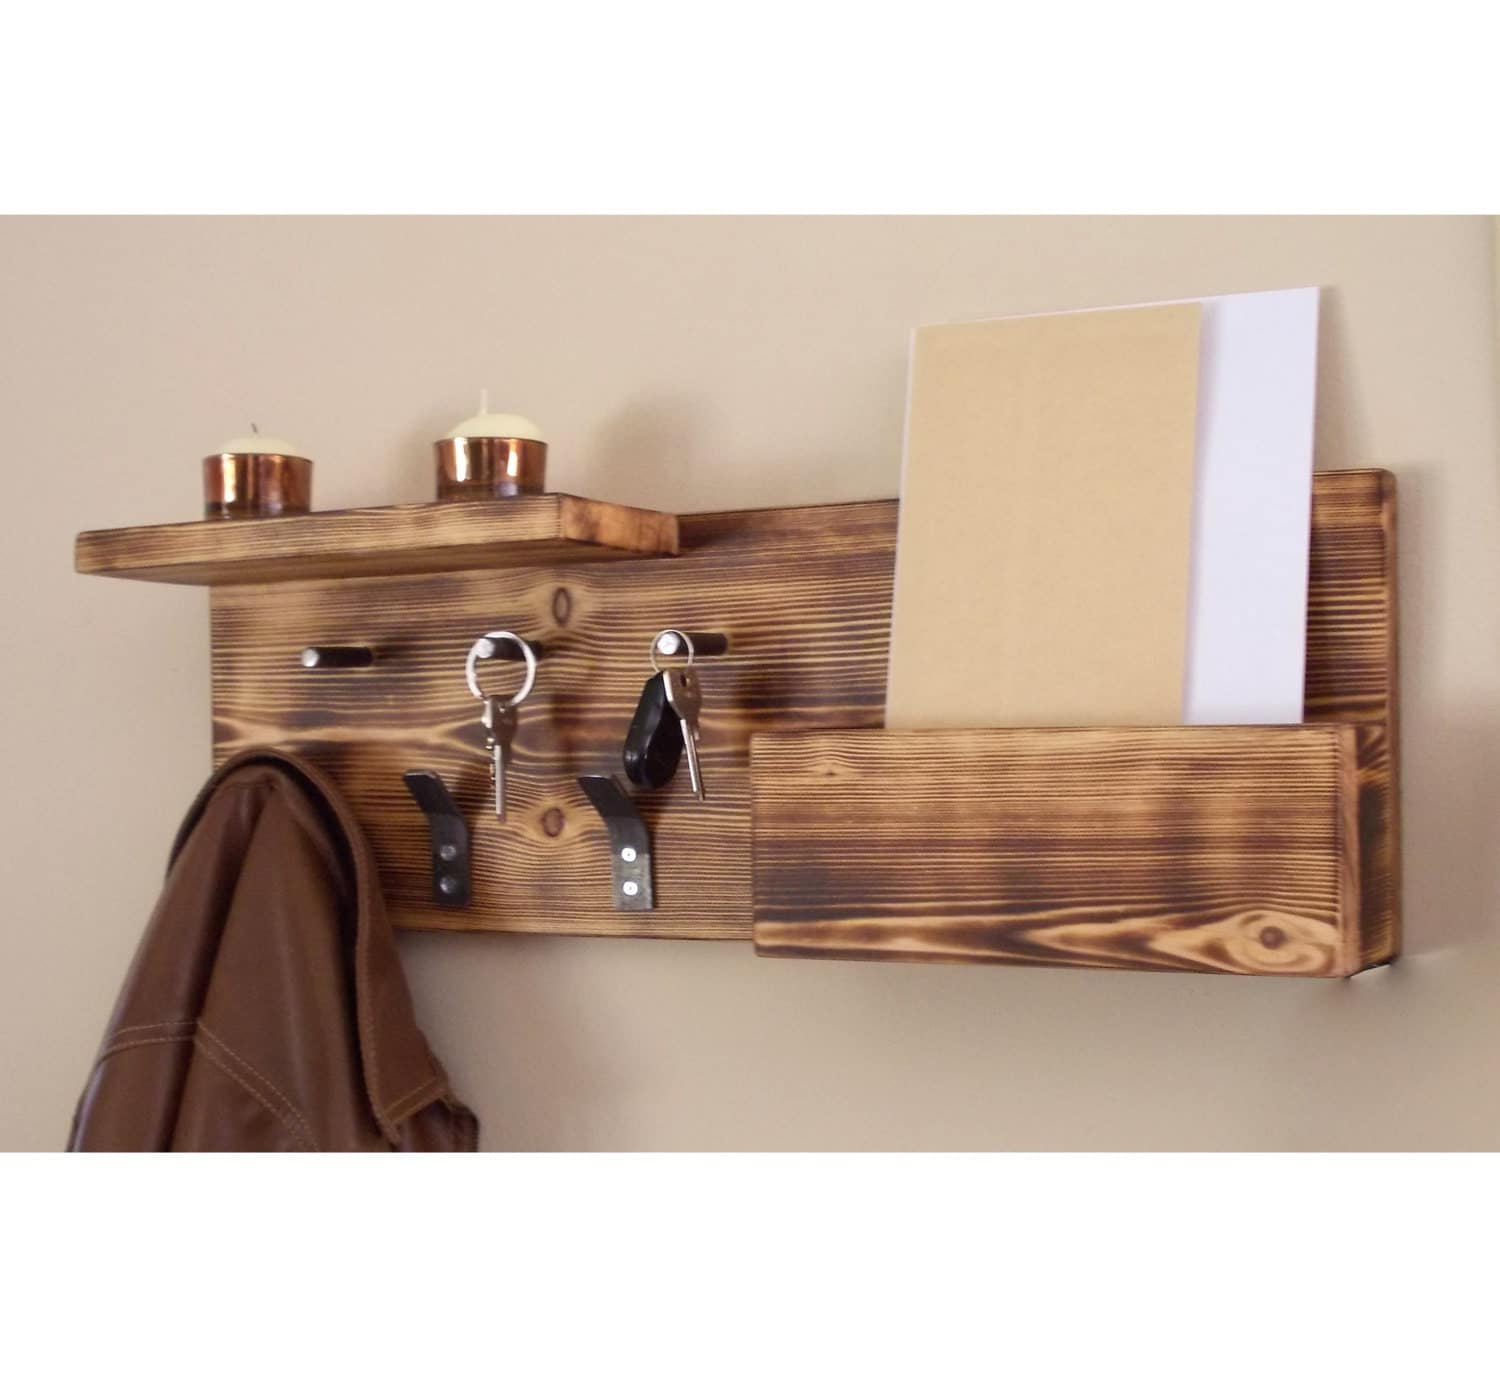 Uncategorized Key Holder For The Wall key holder entryway organizer mail wall coat rack